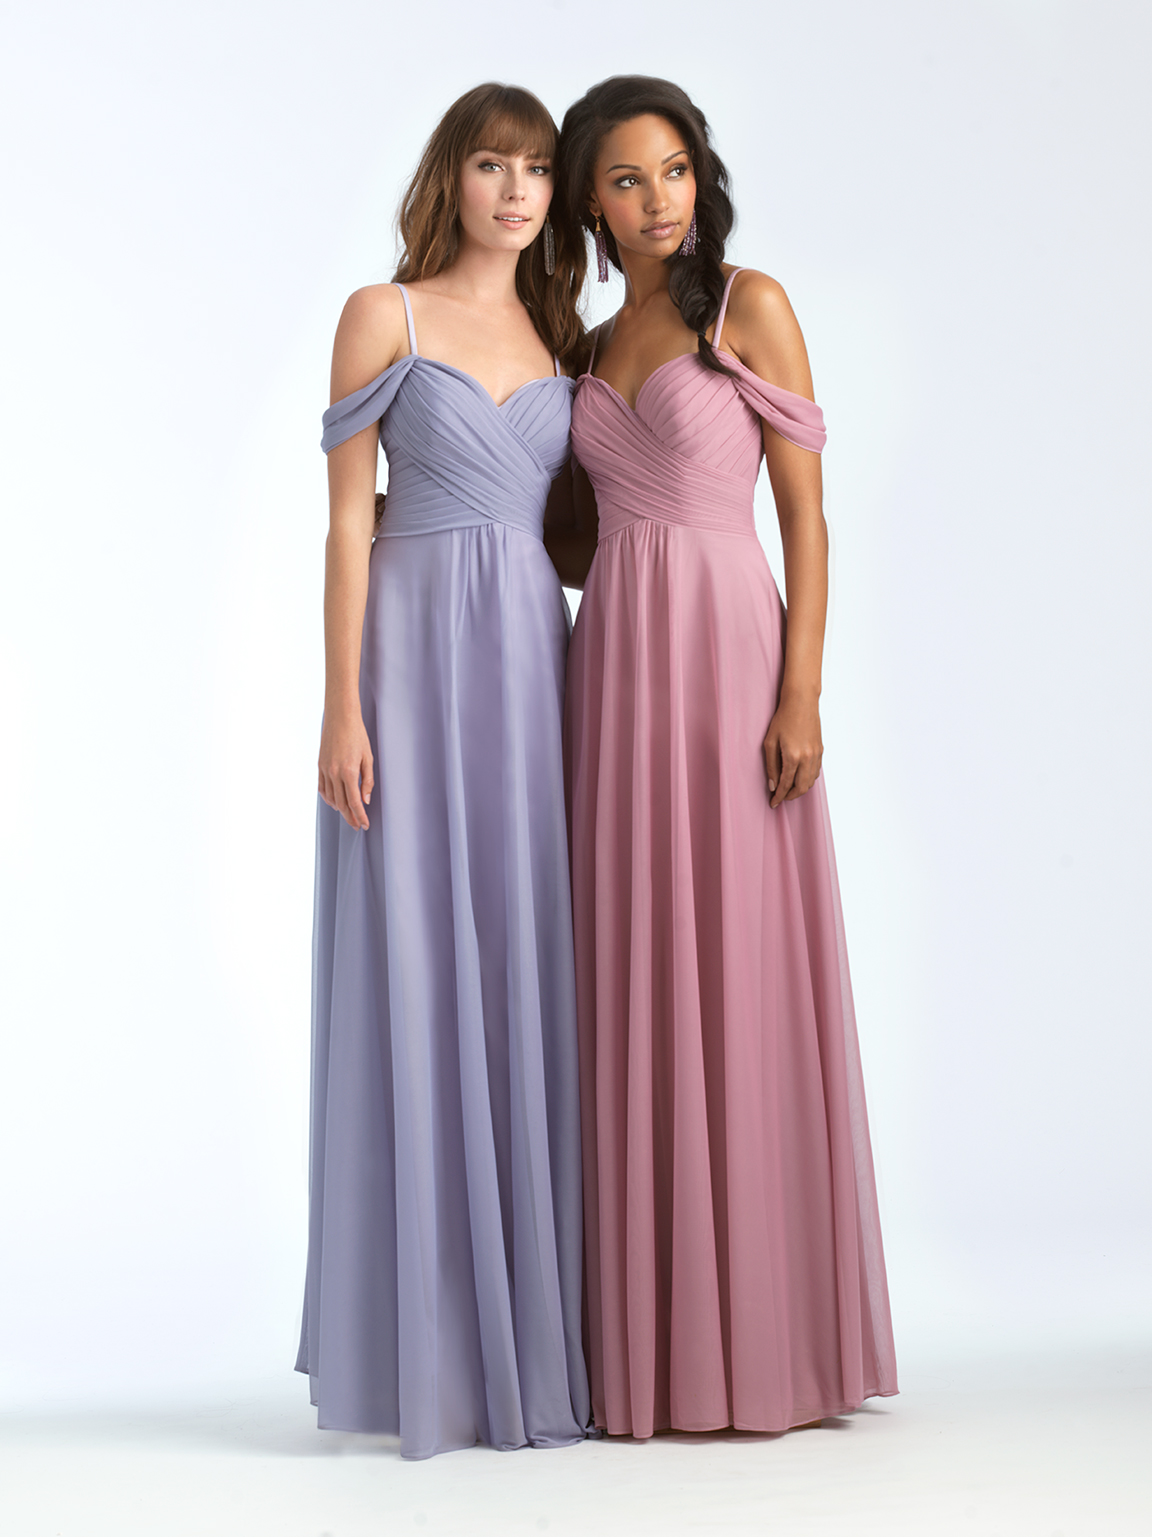 Allure bridesmaid dressesallure bridesmaids 1567allure bridal allure bridesmaid dresses allure bridesmaids 1567 loading zoom ombrellifo Choice Image